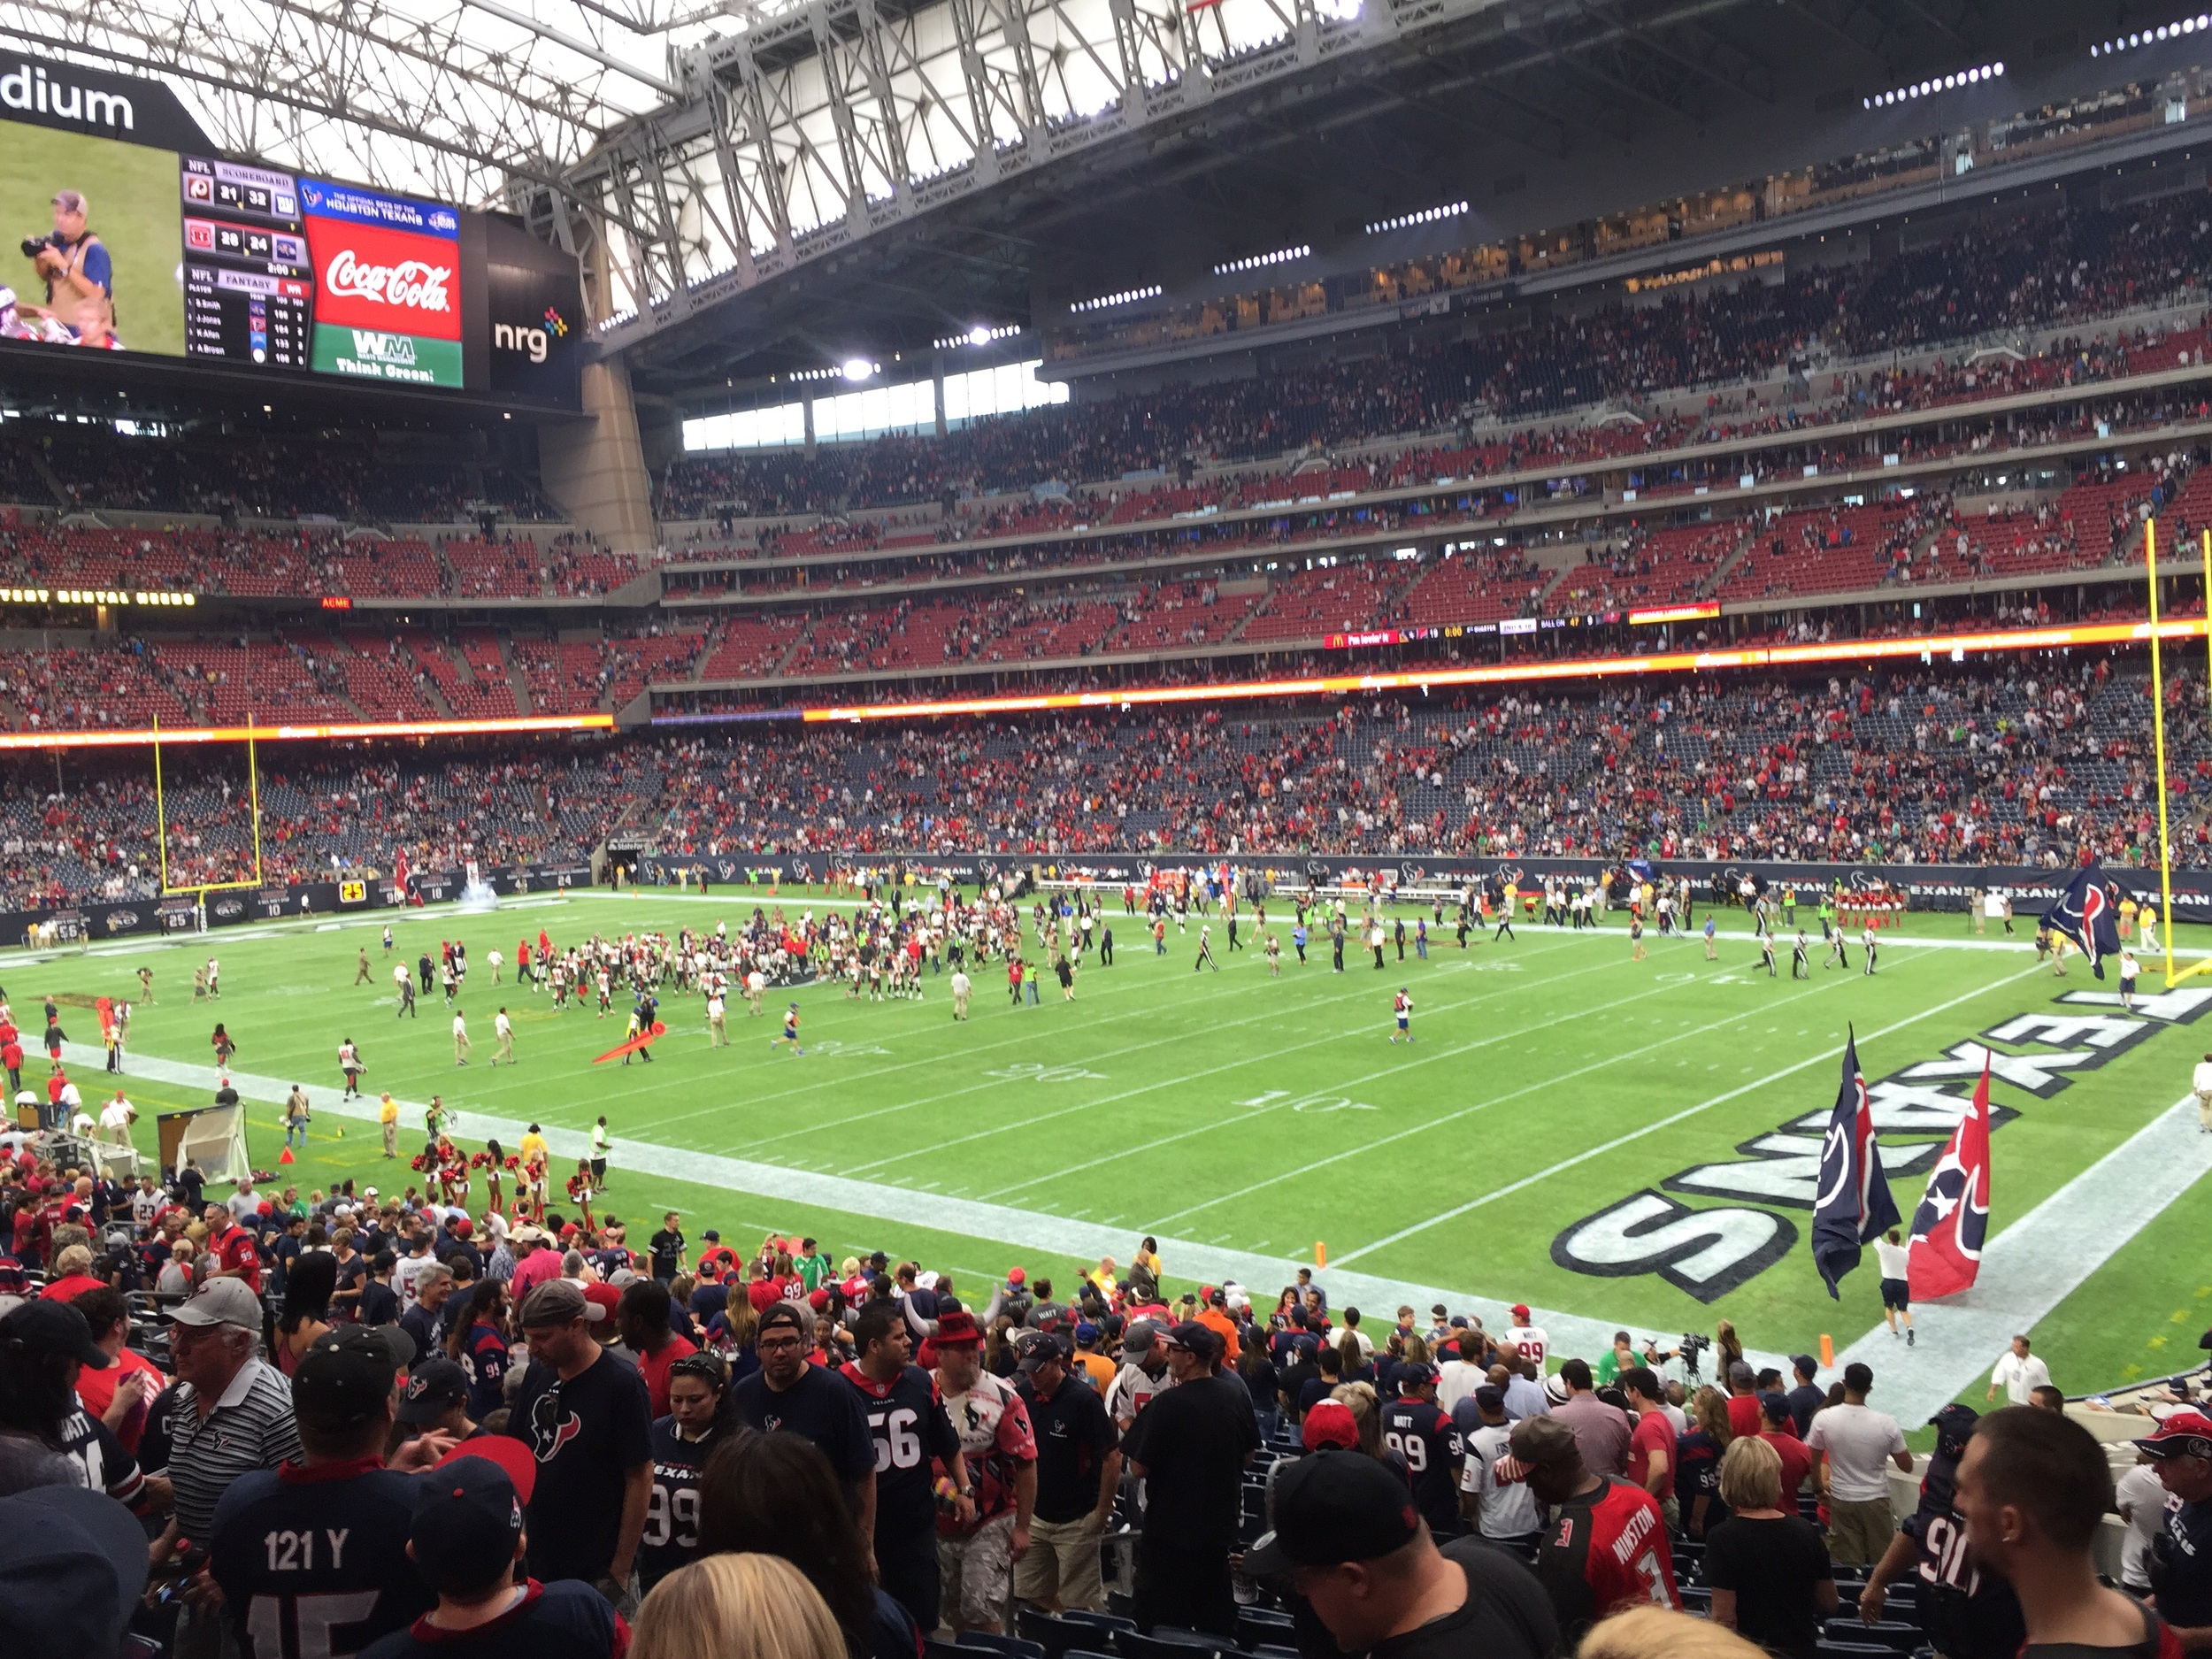 Texans WON their first game of the season 9-19.